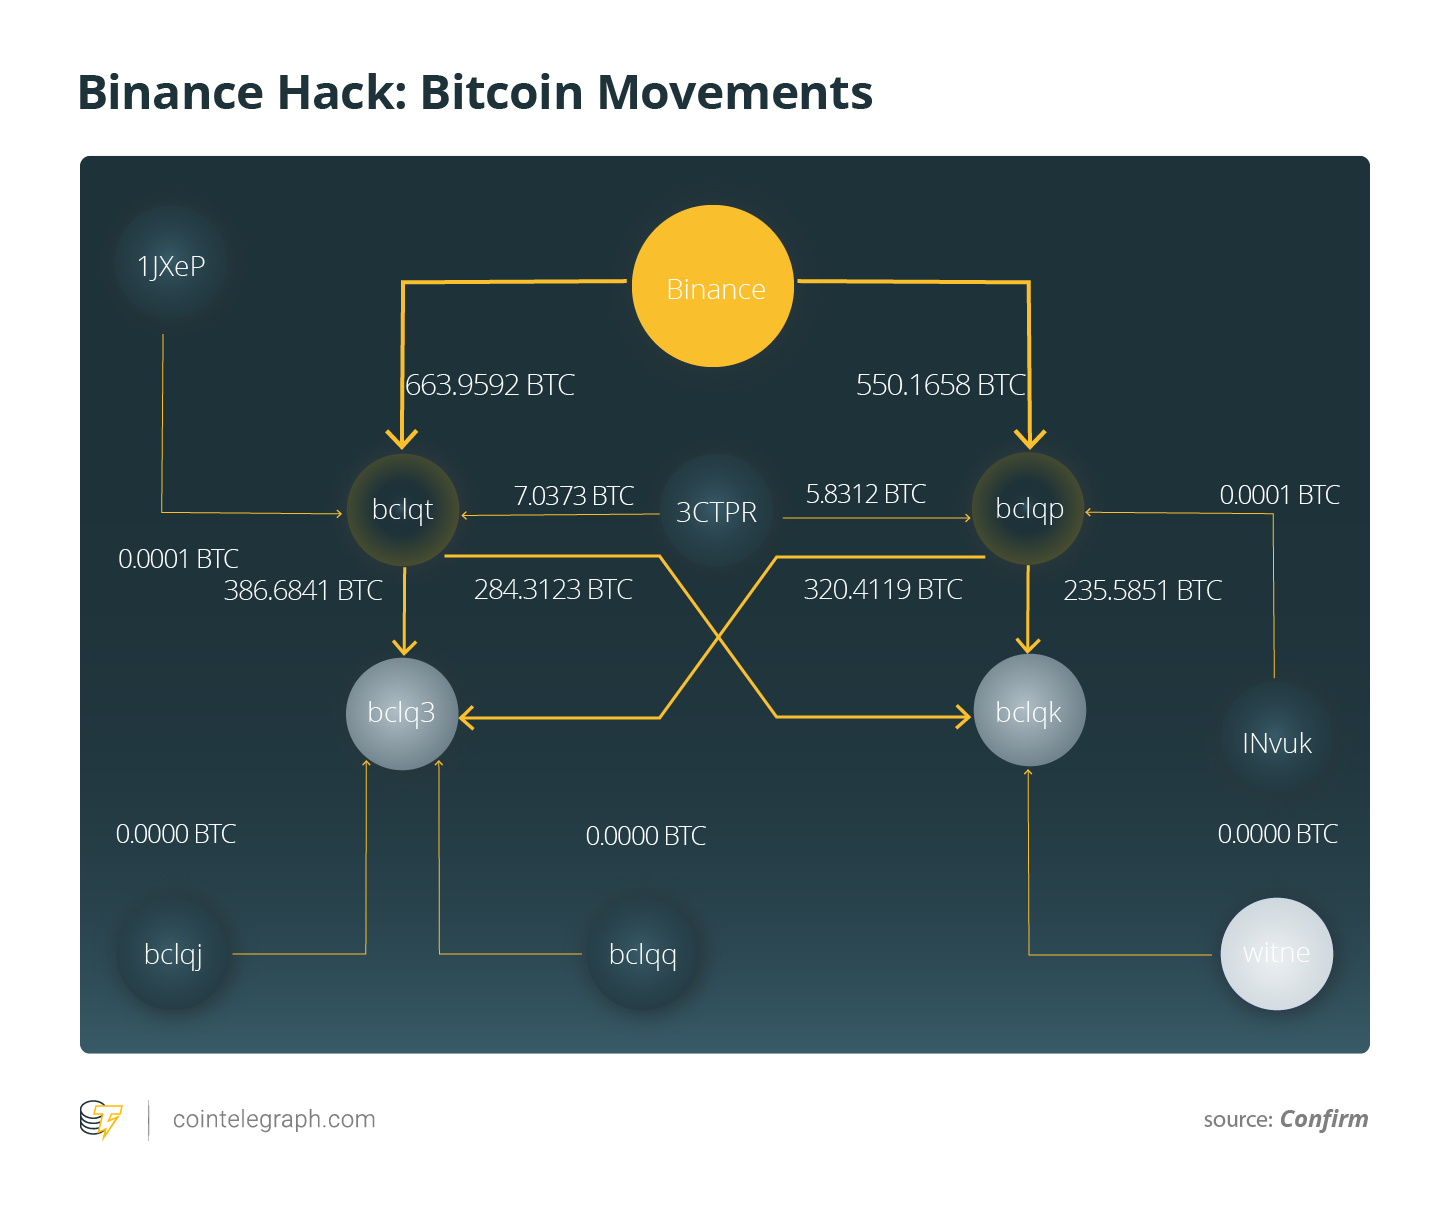 Binance Hack: Bitcoin Movements